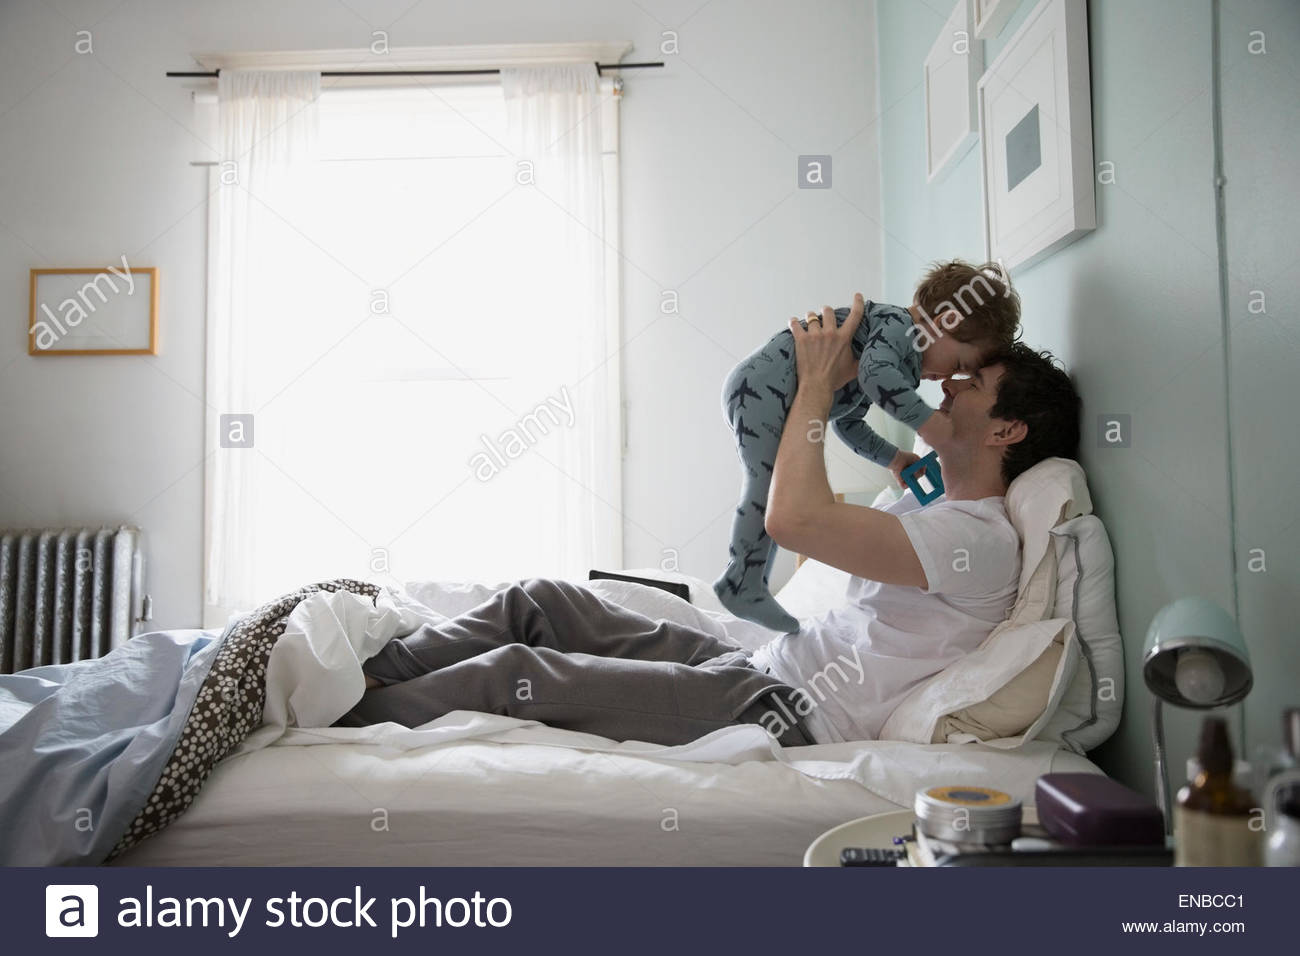 Father and son in pajamas cuddling in bed - Stock Image